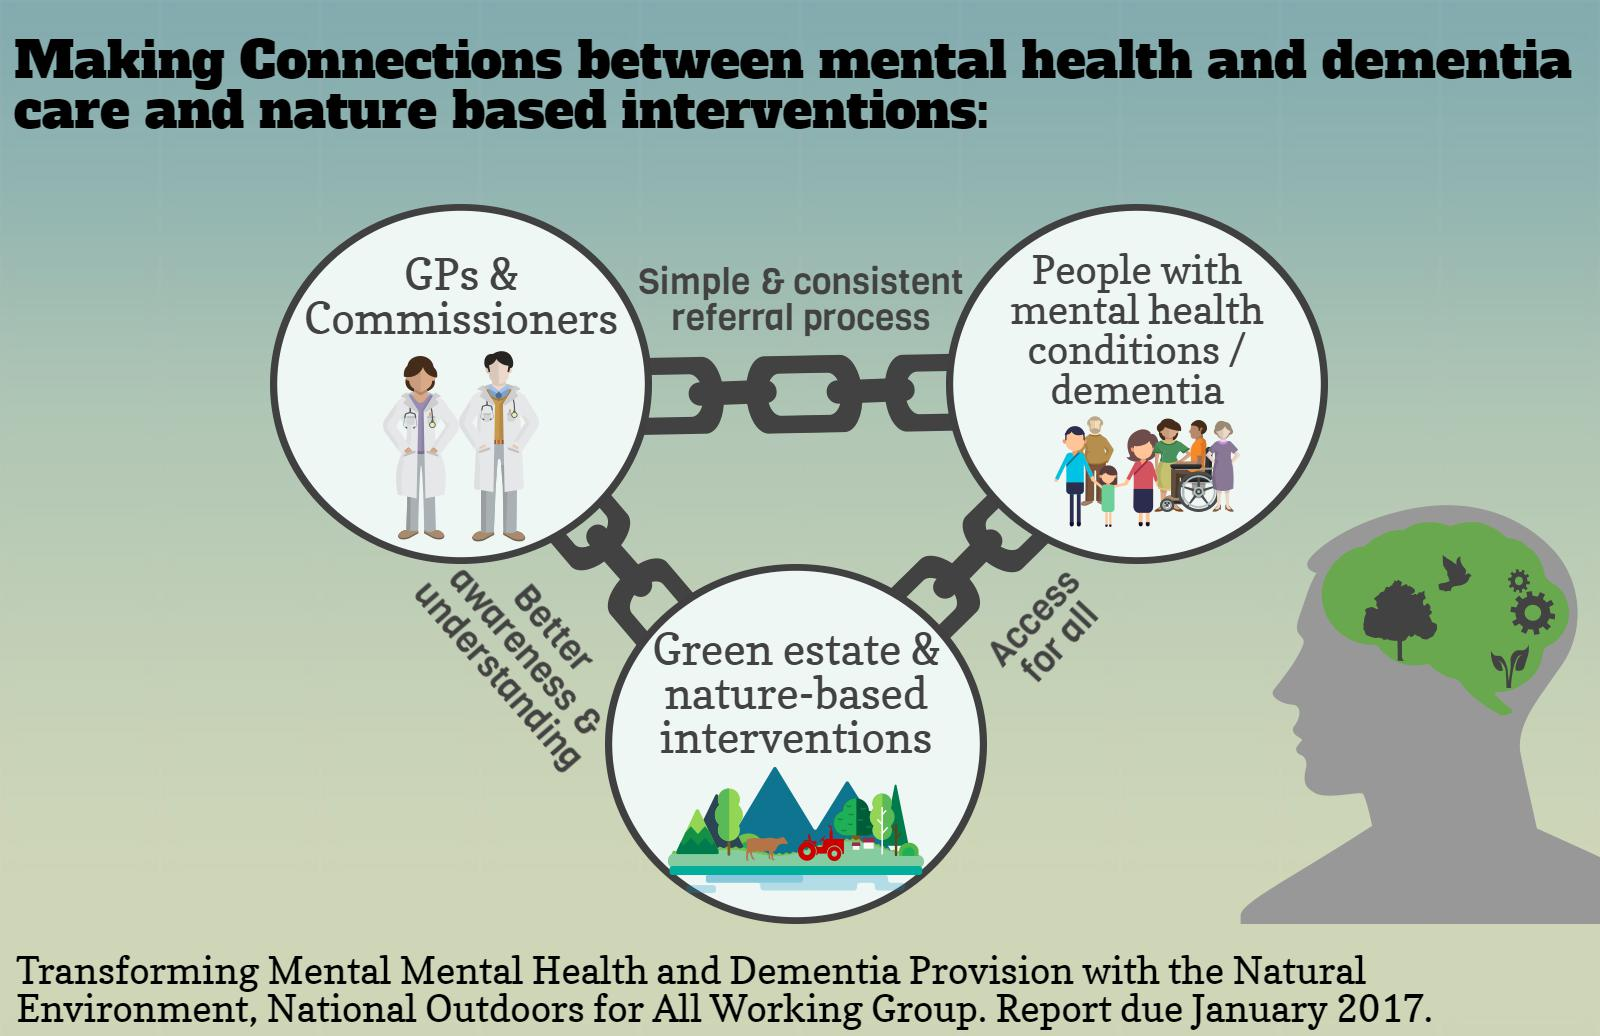 Making connections between mental health and dementia care and nature based interventions